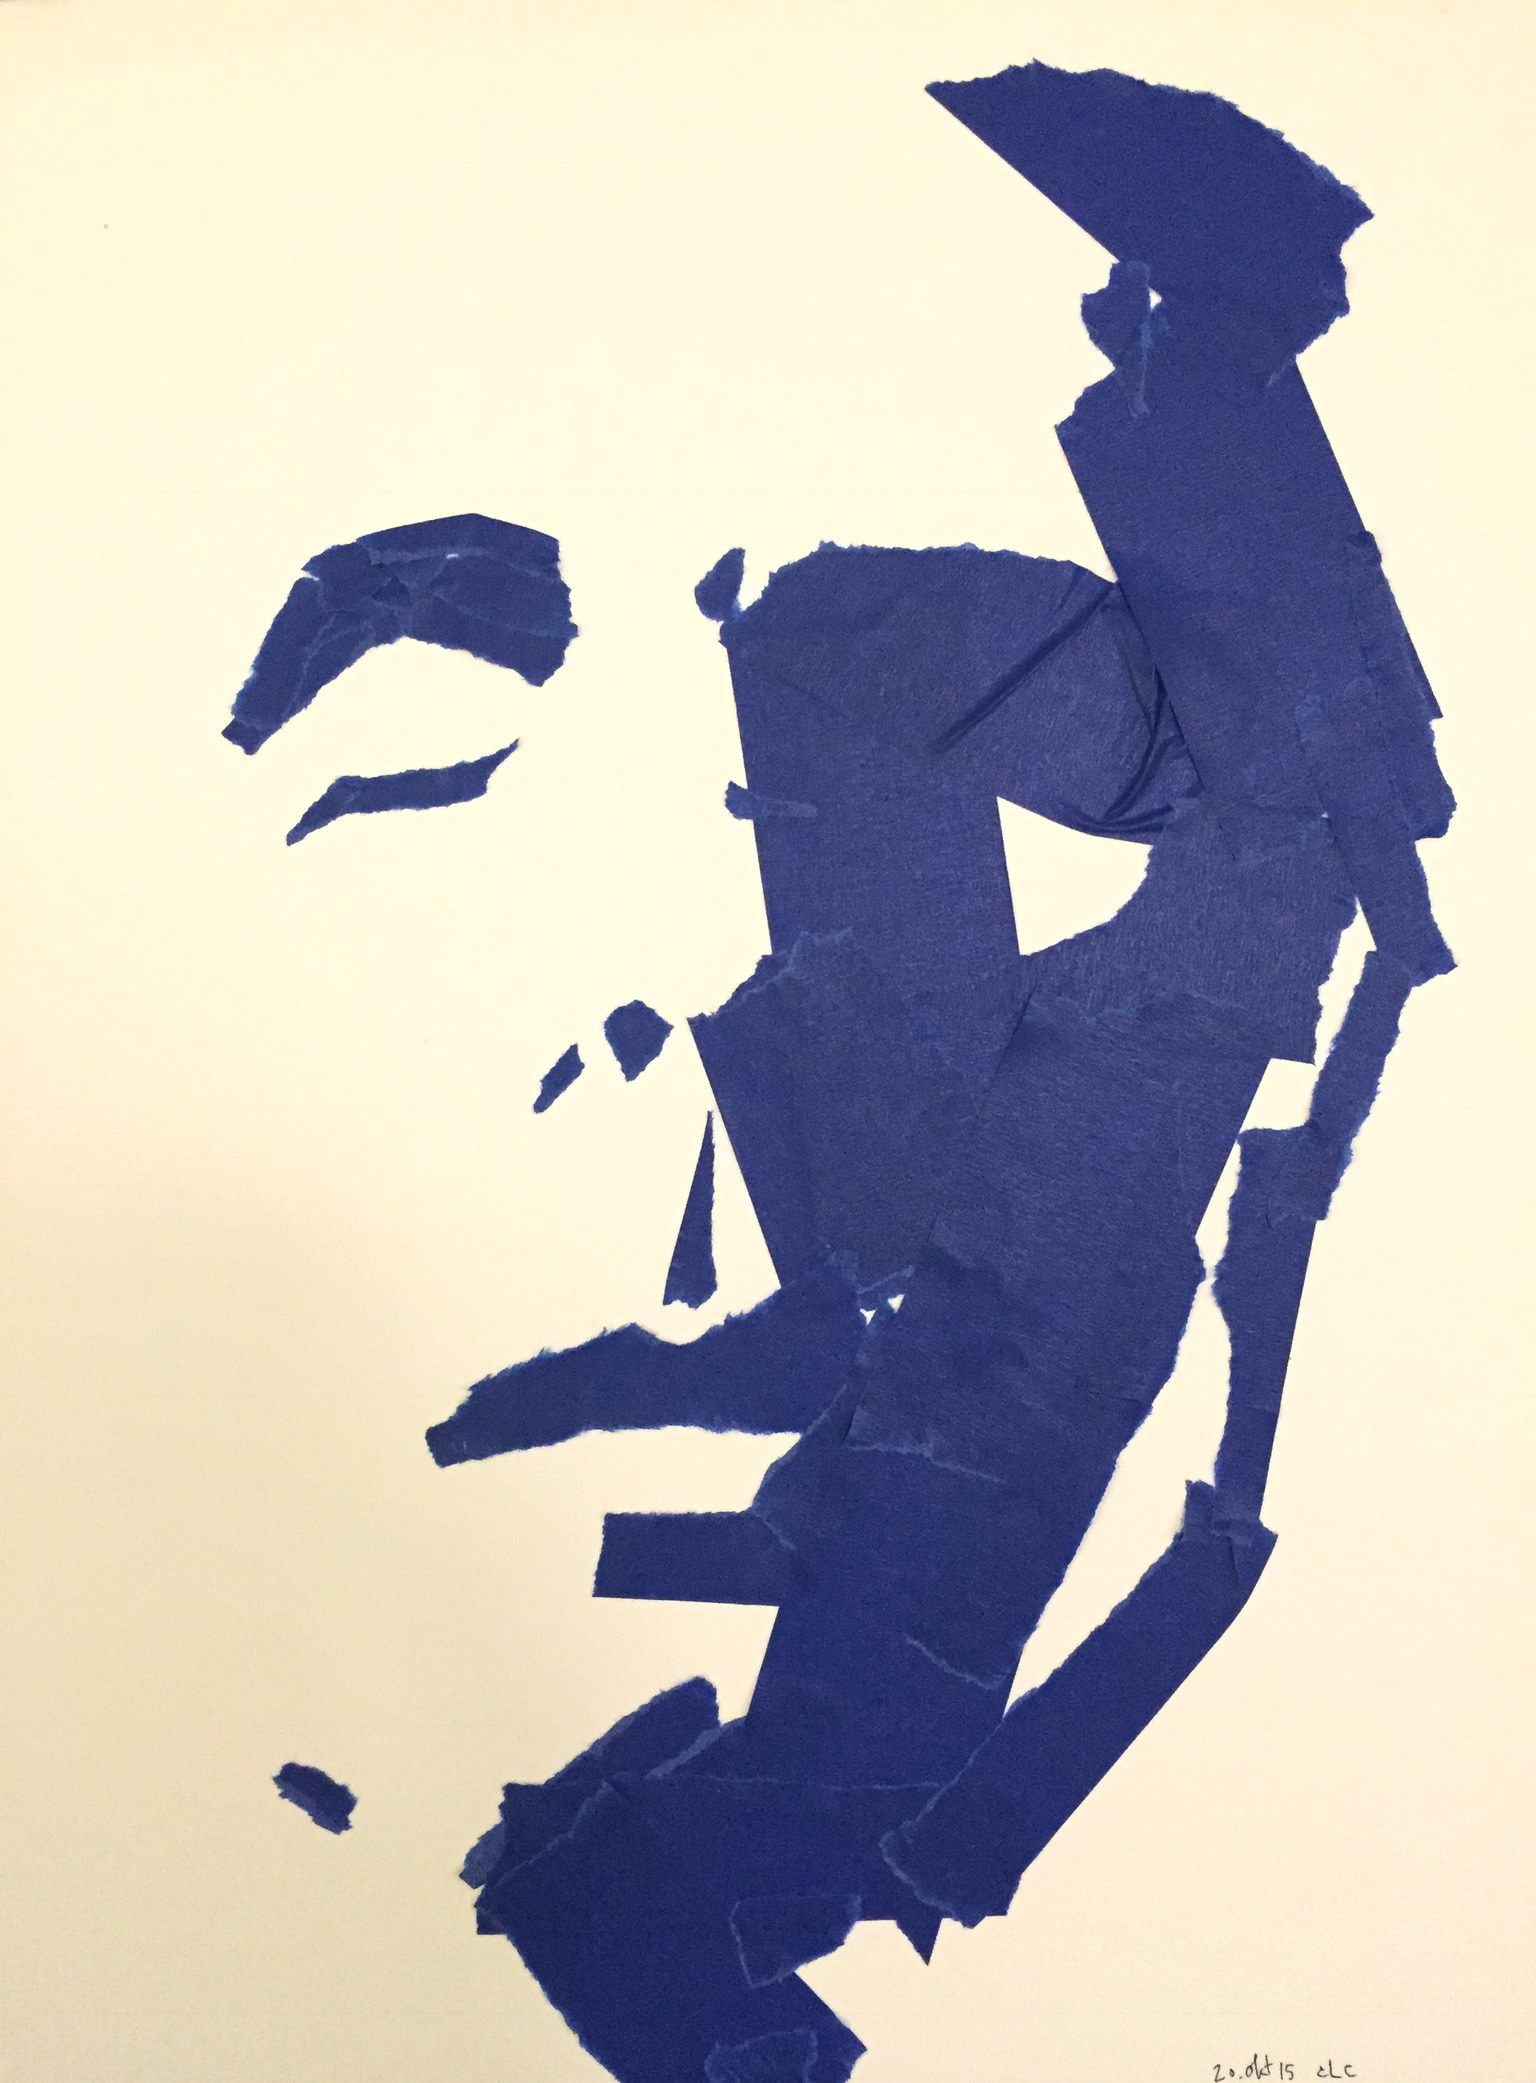 339/365. Self portrait with blue tape. No. XVII